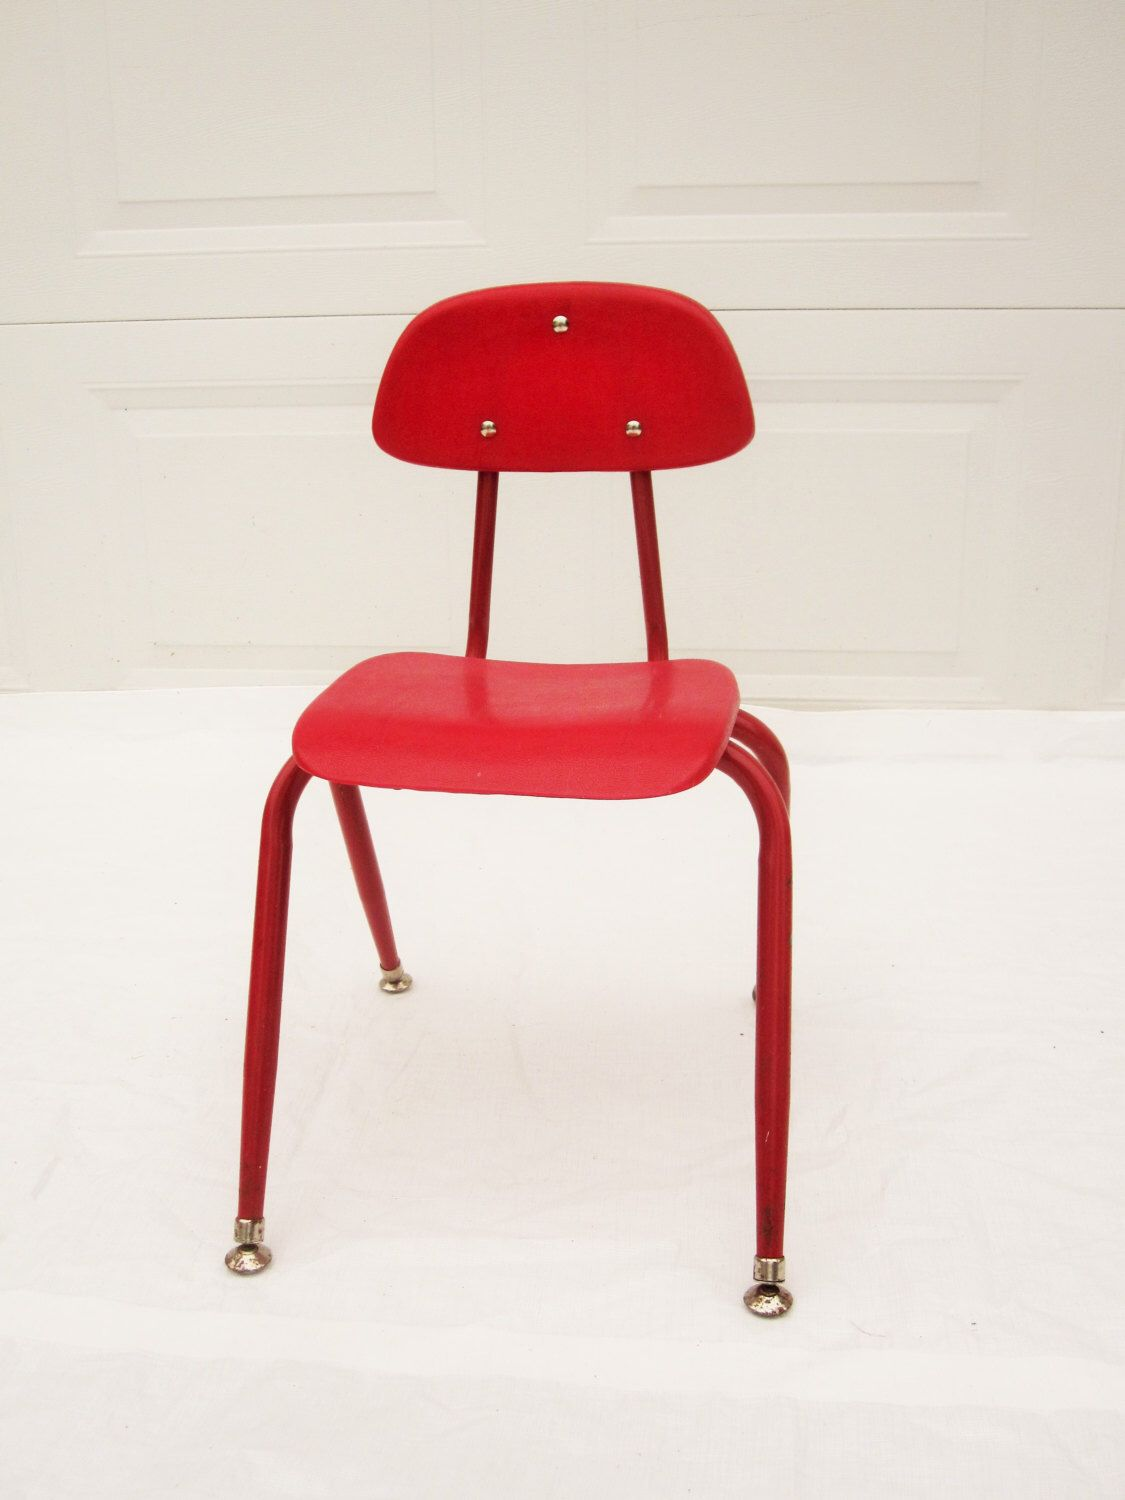 Molded plastic and metal chairs - A Red Plastic Chair For A Child Molded Plastic And Metal Chair Sturdy